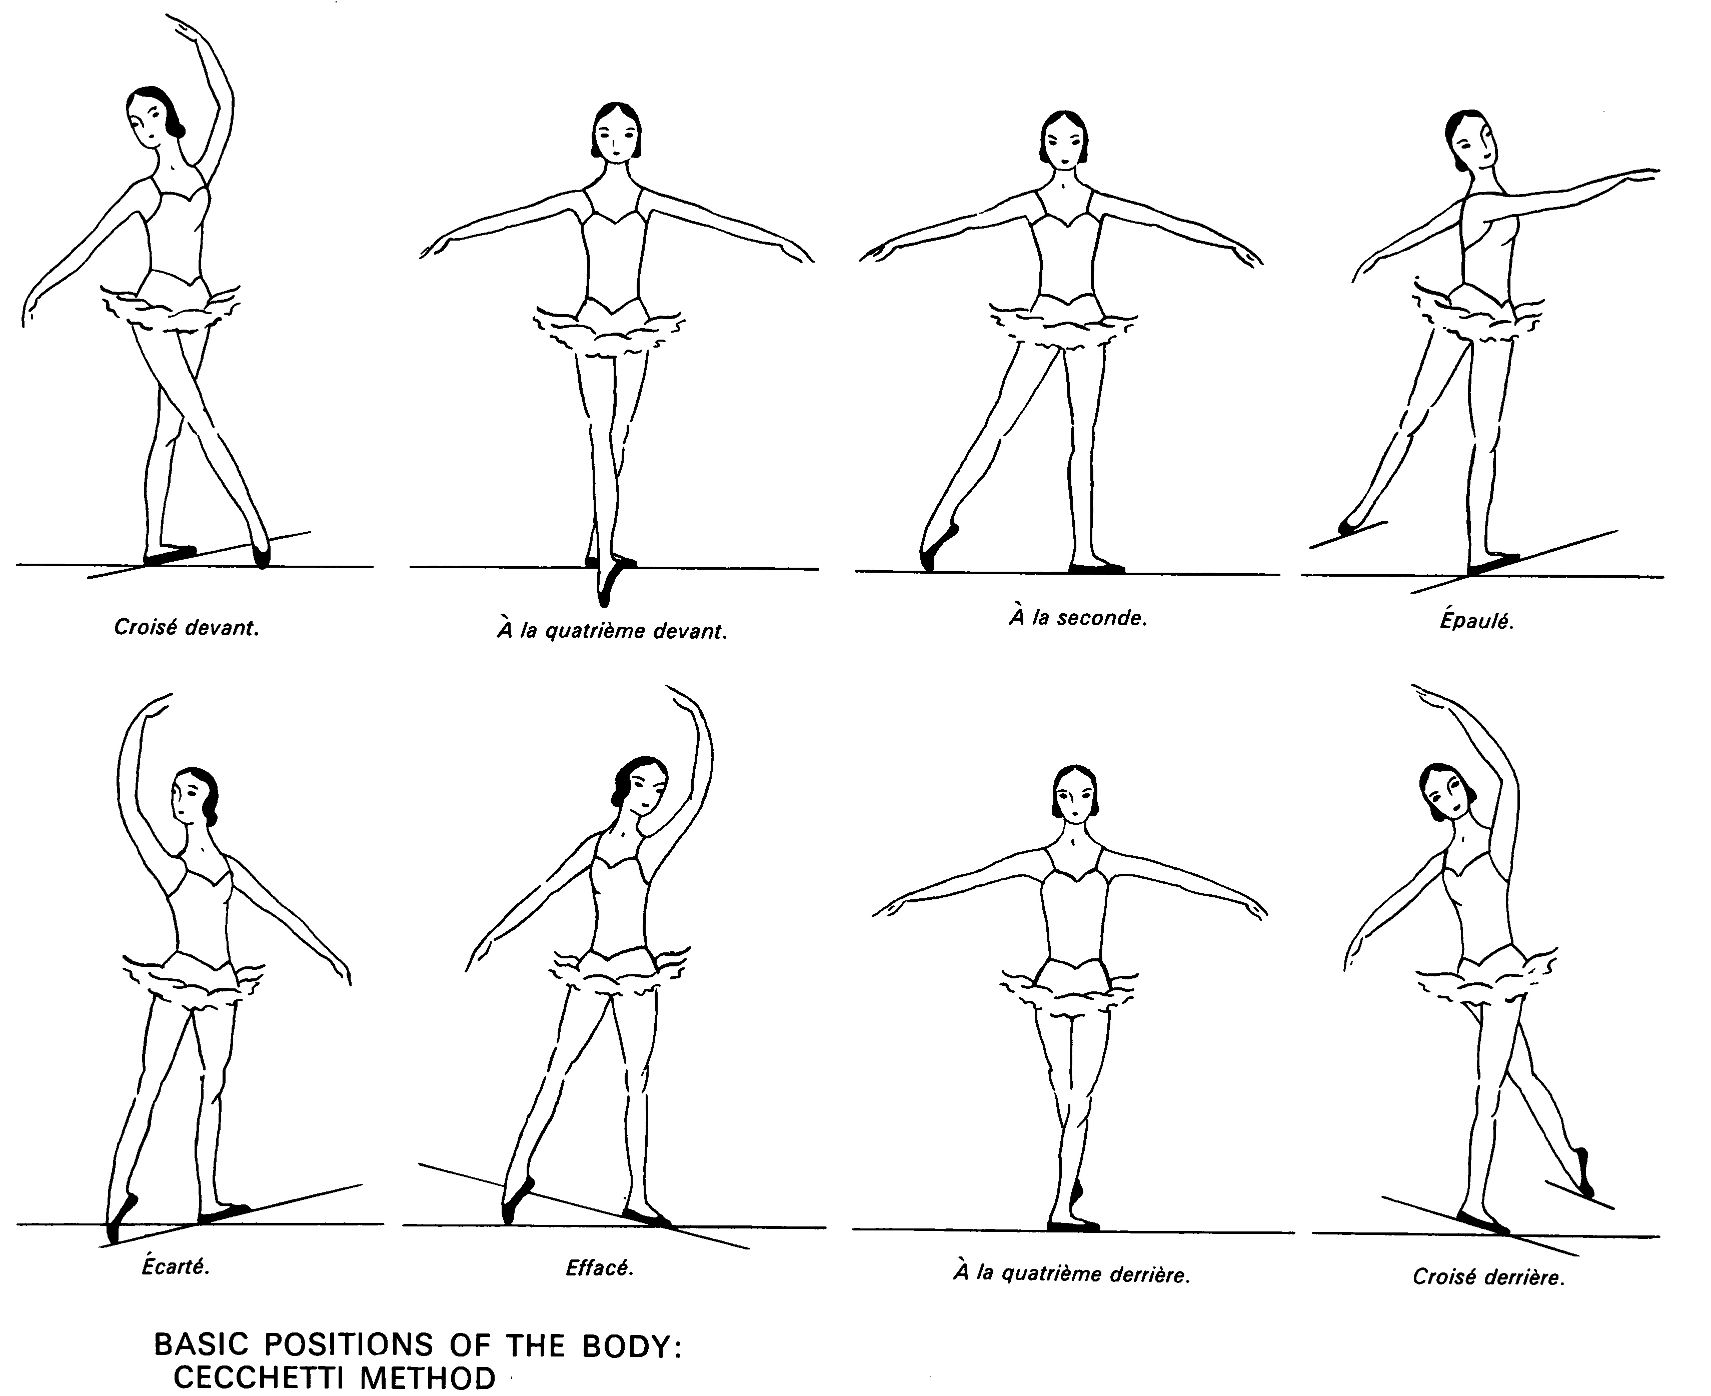 Anatomical Body Positions Worksheet Printable Worksheets And Activities For Teachers Parents Tutors And Homeschool Families